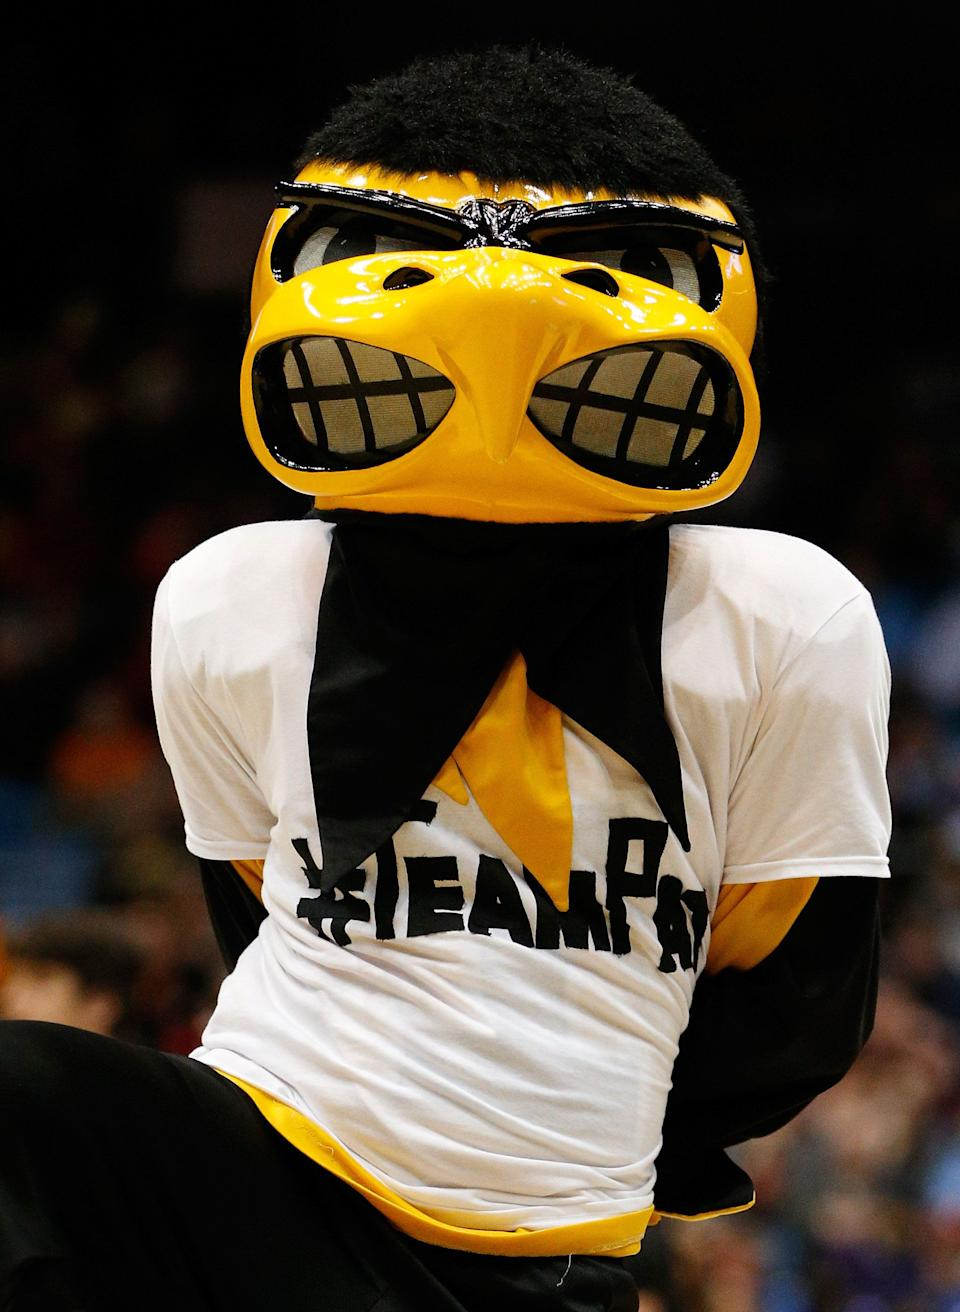 DAYTON, OH - MARCH 19:  The Iowa Hawkeyes mascot, Herky, performs during the first round of the 2014 NCAA Men's Basketball Tournament against the Tennessee Volunteers at UD Arena on March 19, 2014 in Dayton, Ohio.  (Photo by Gregory Shamus/Getty Images)